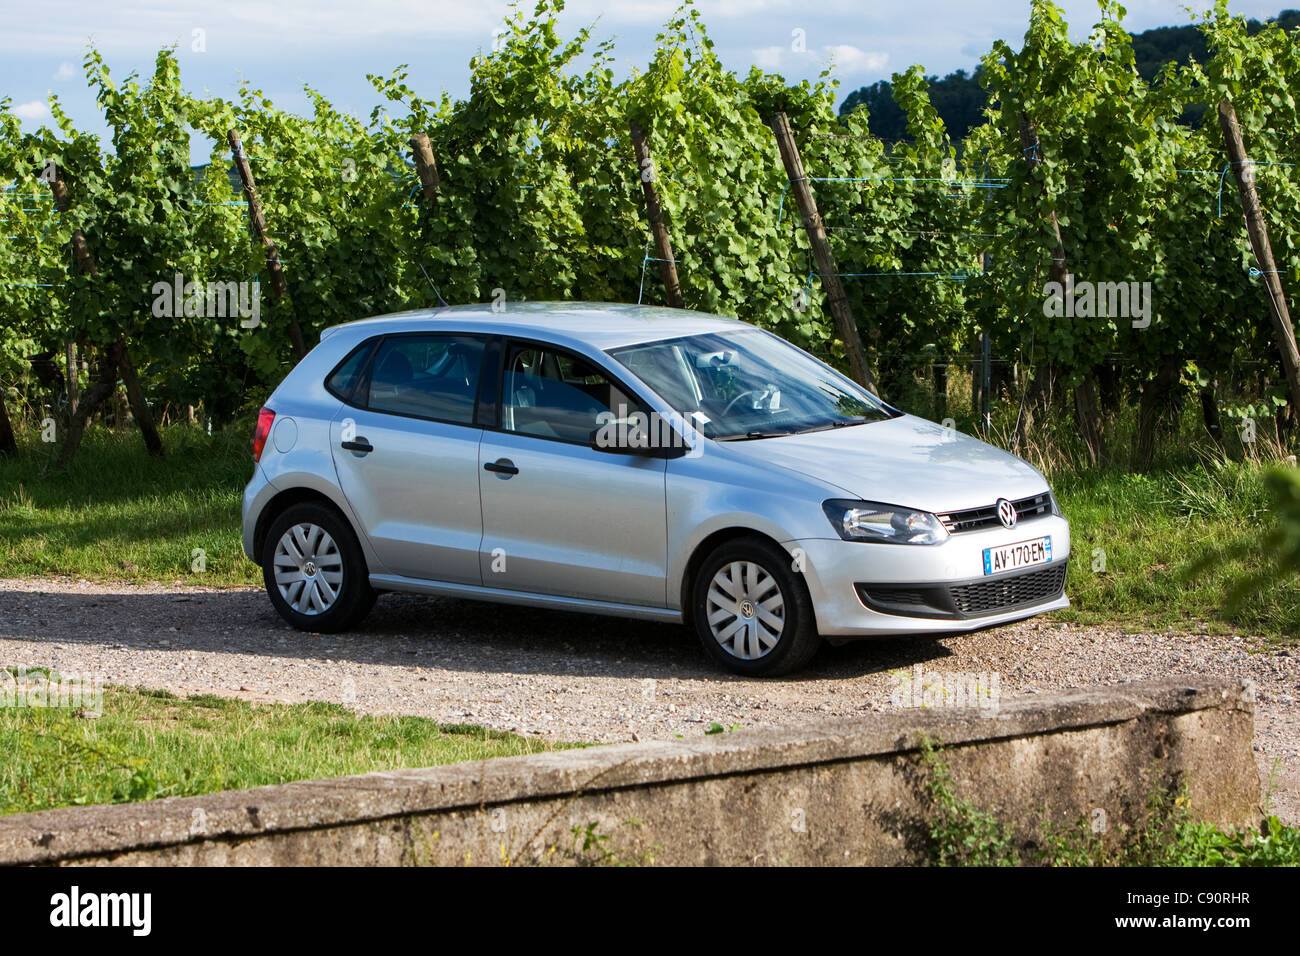 Car hire France Volkswagen VW in the Route du Vin region France - Stock Image